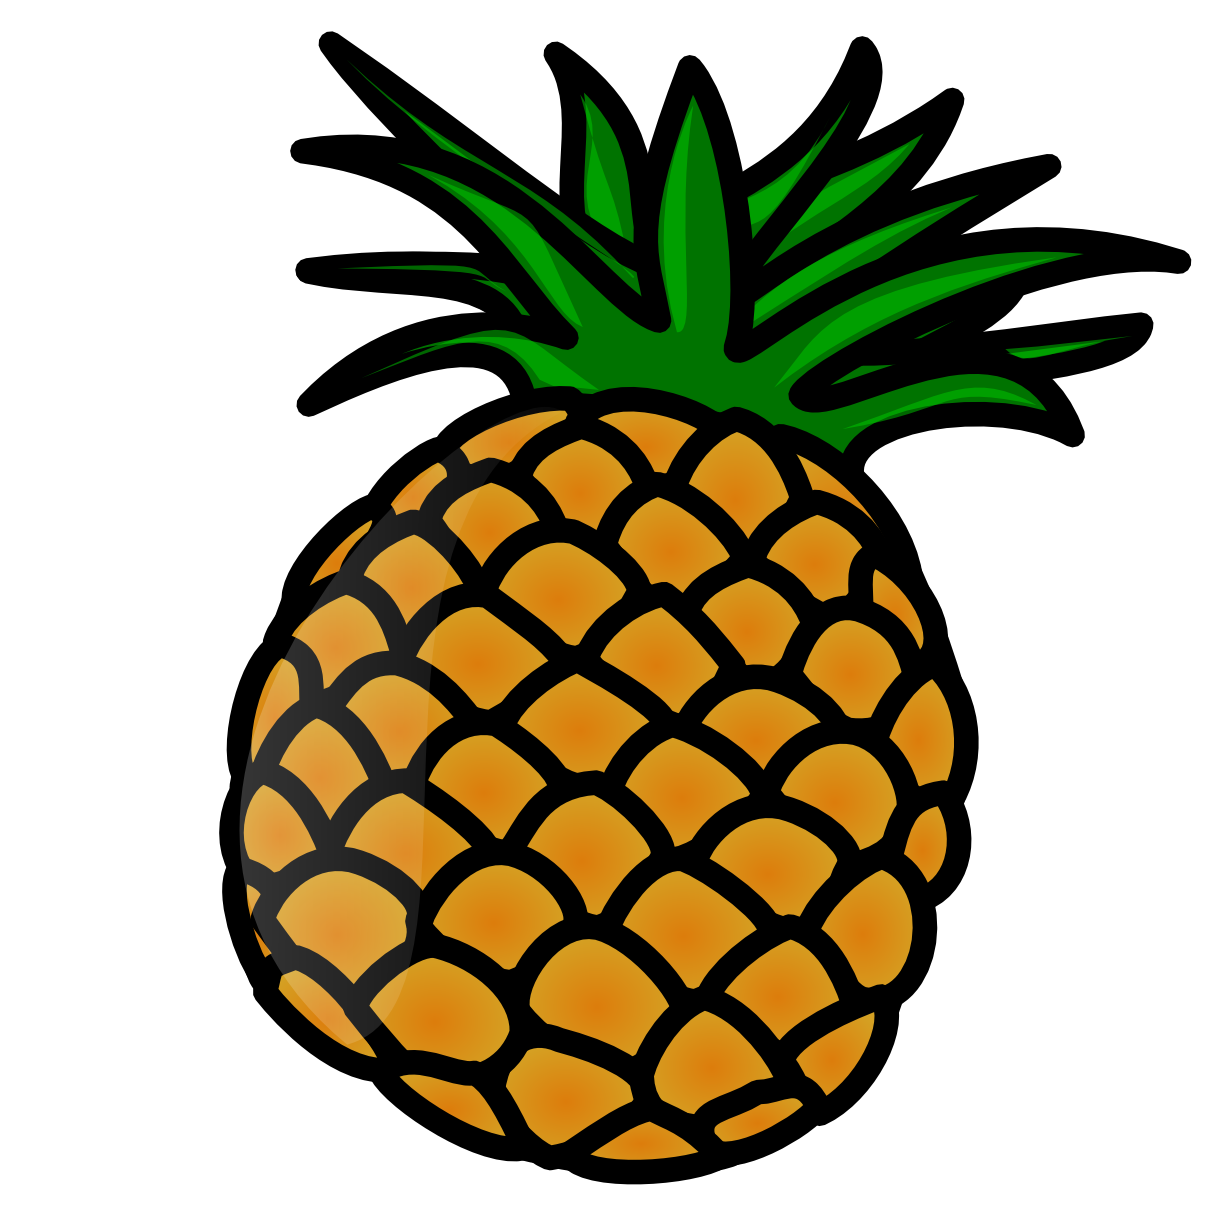 1229x1229 Pineapple Png Images Transparent Free Download